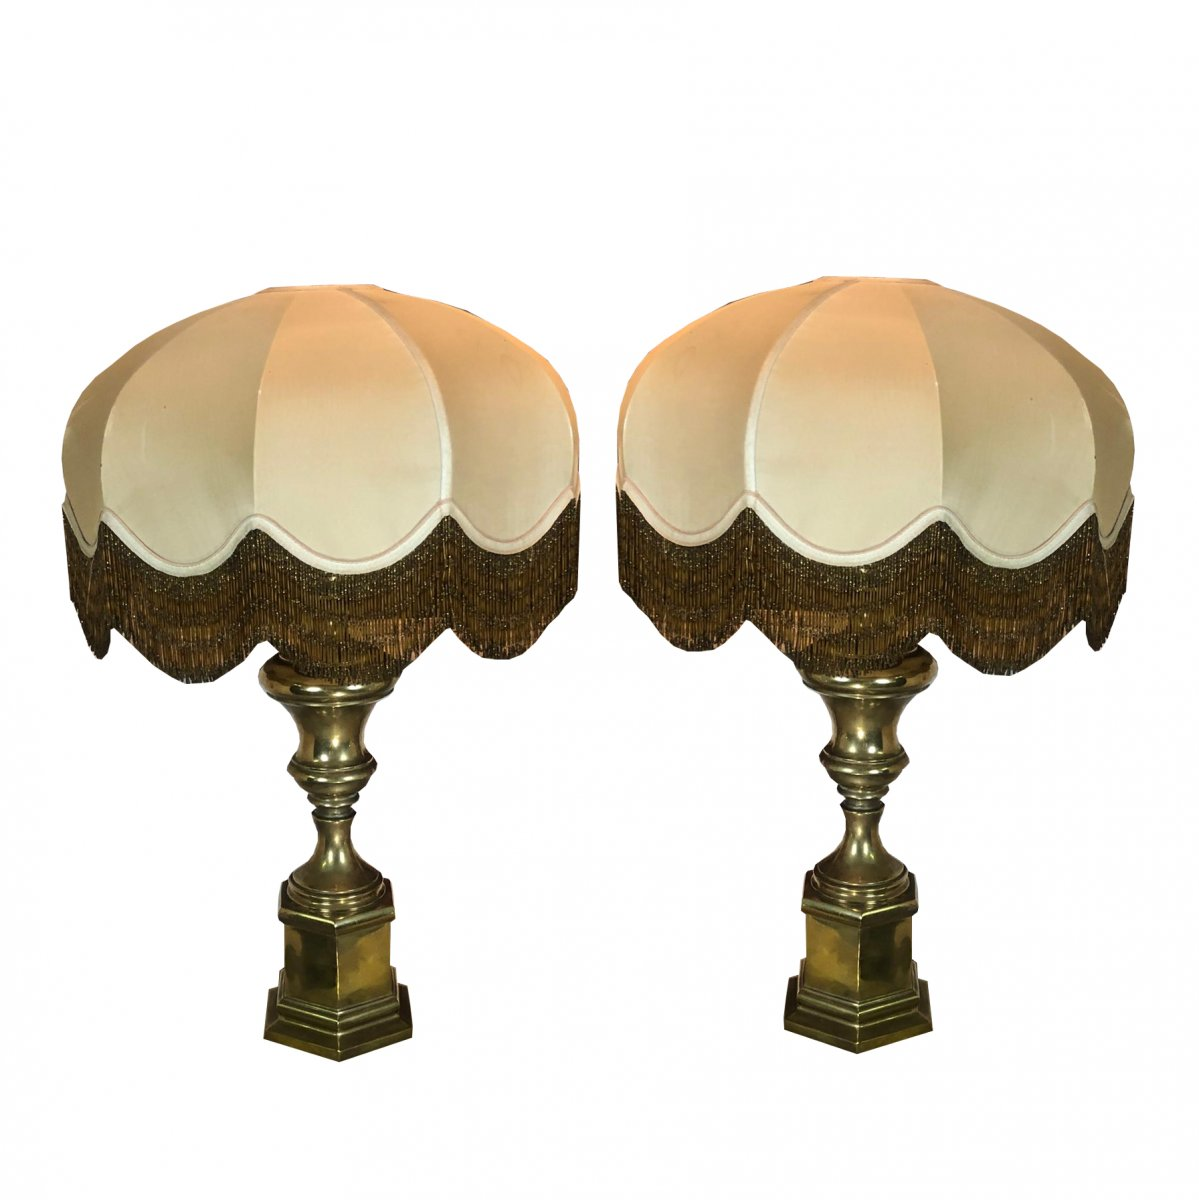 Pair Of 50's Vintage Italian Brass Table Lamp